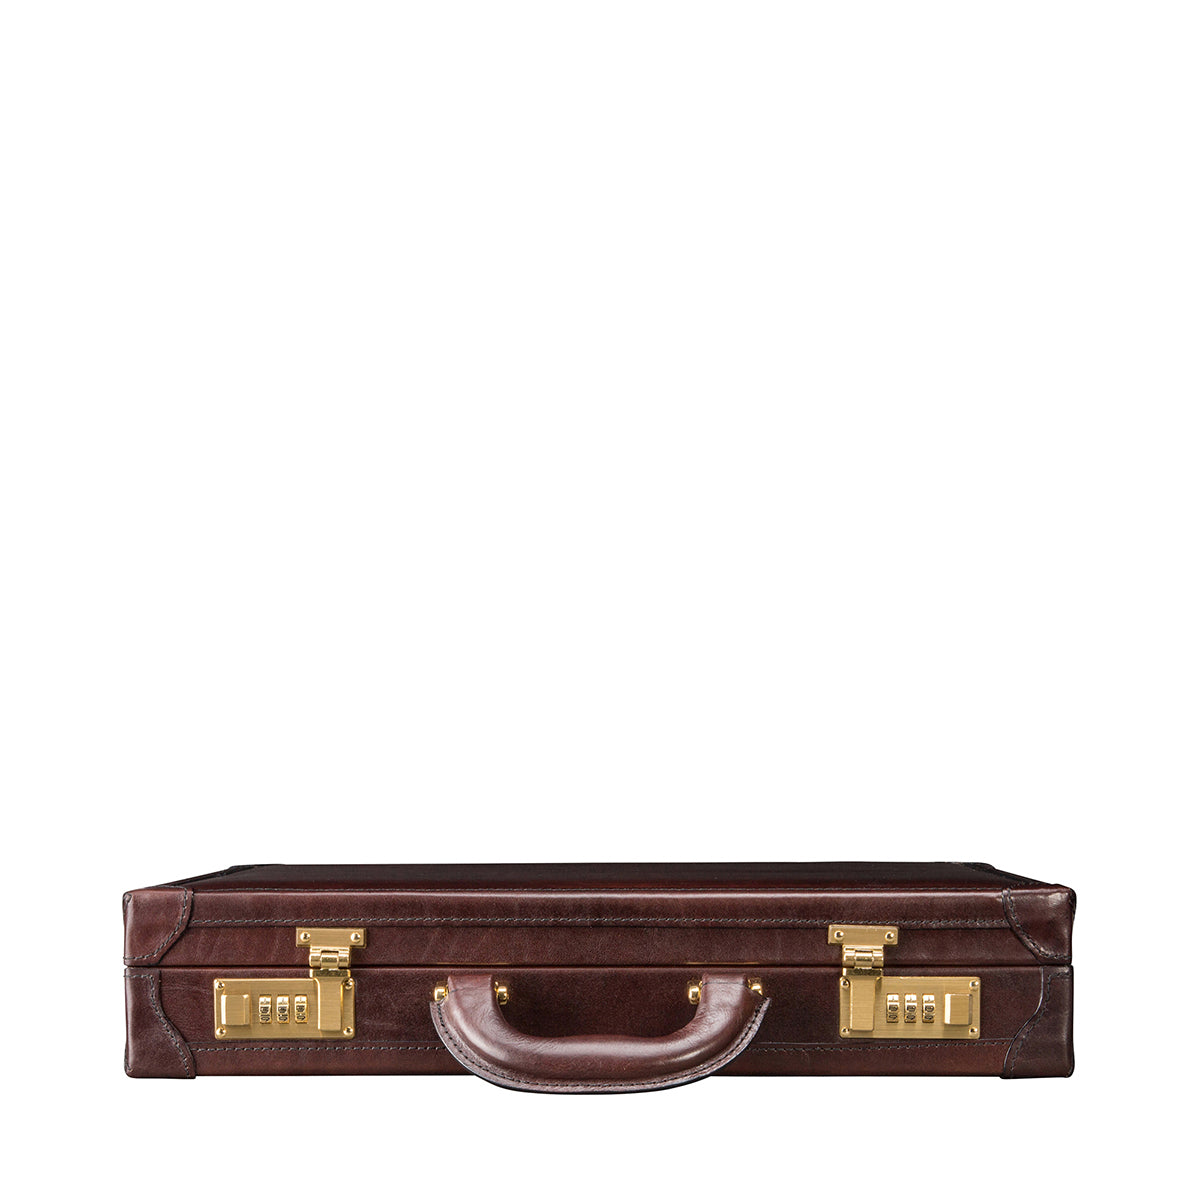 Image 4 of the 'Scanno' Slim Dark Chocolate Veg-Tanned Leather Business Attaché  Case